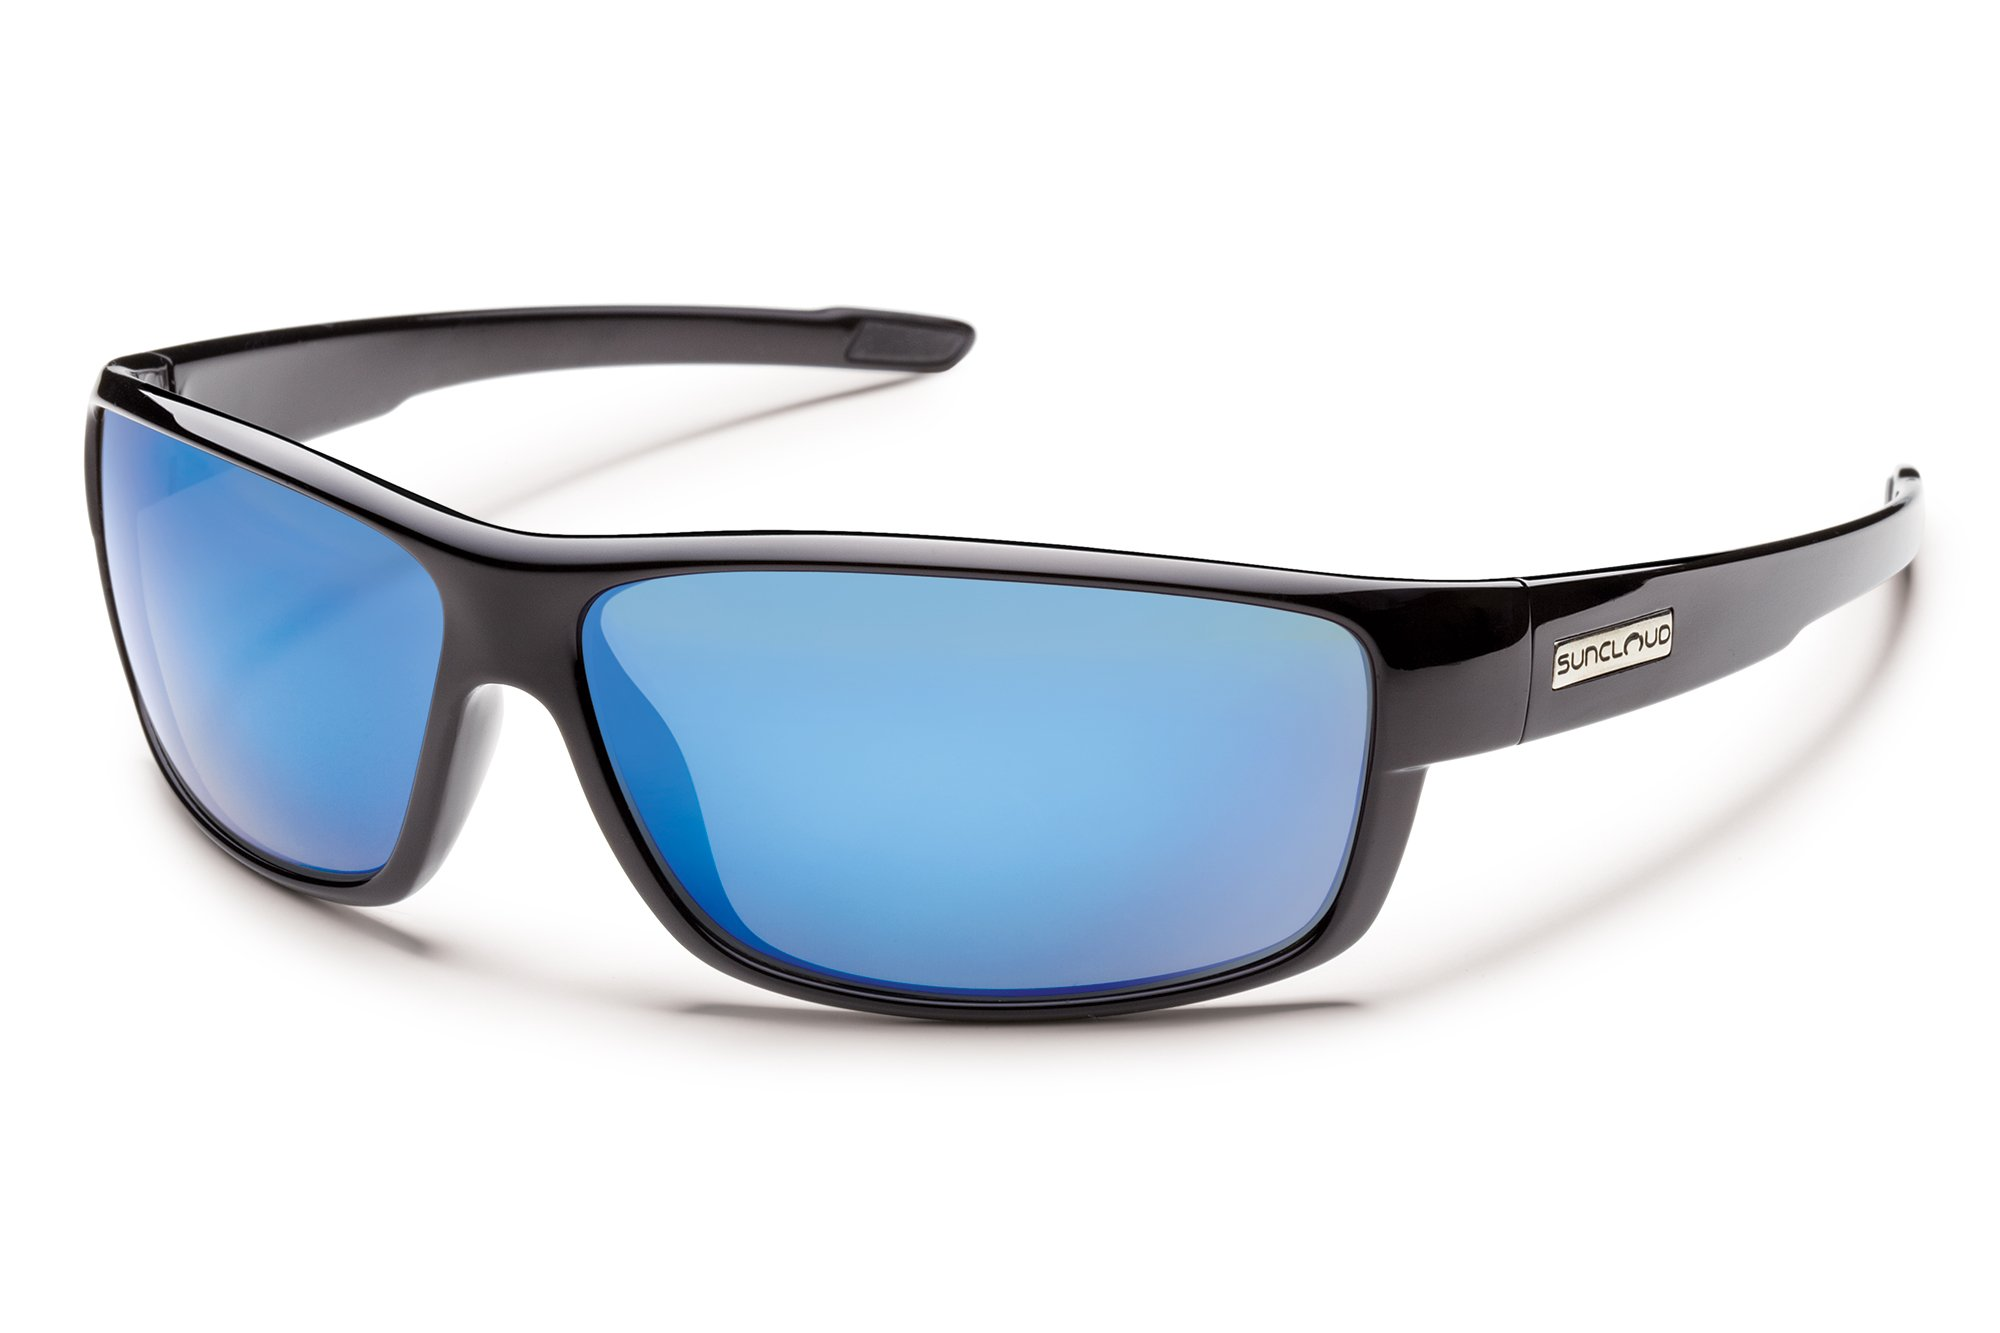 Suncloud Optics Voucher Injected Frames Polarized Fashion Sunglasses - Black/Blue Mirror by Suncloud